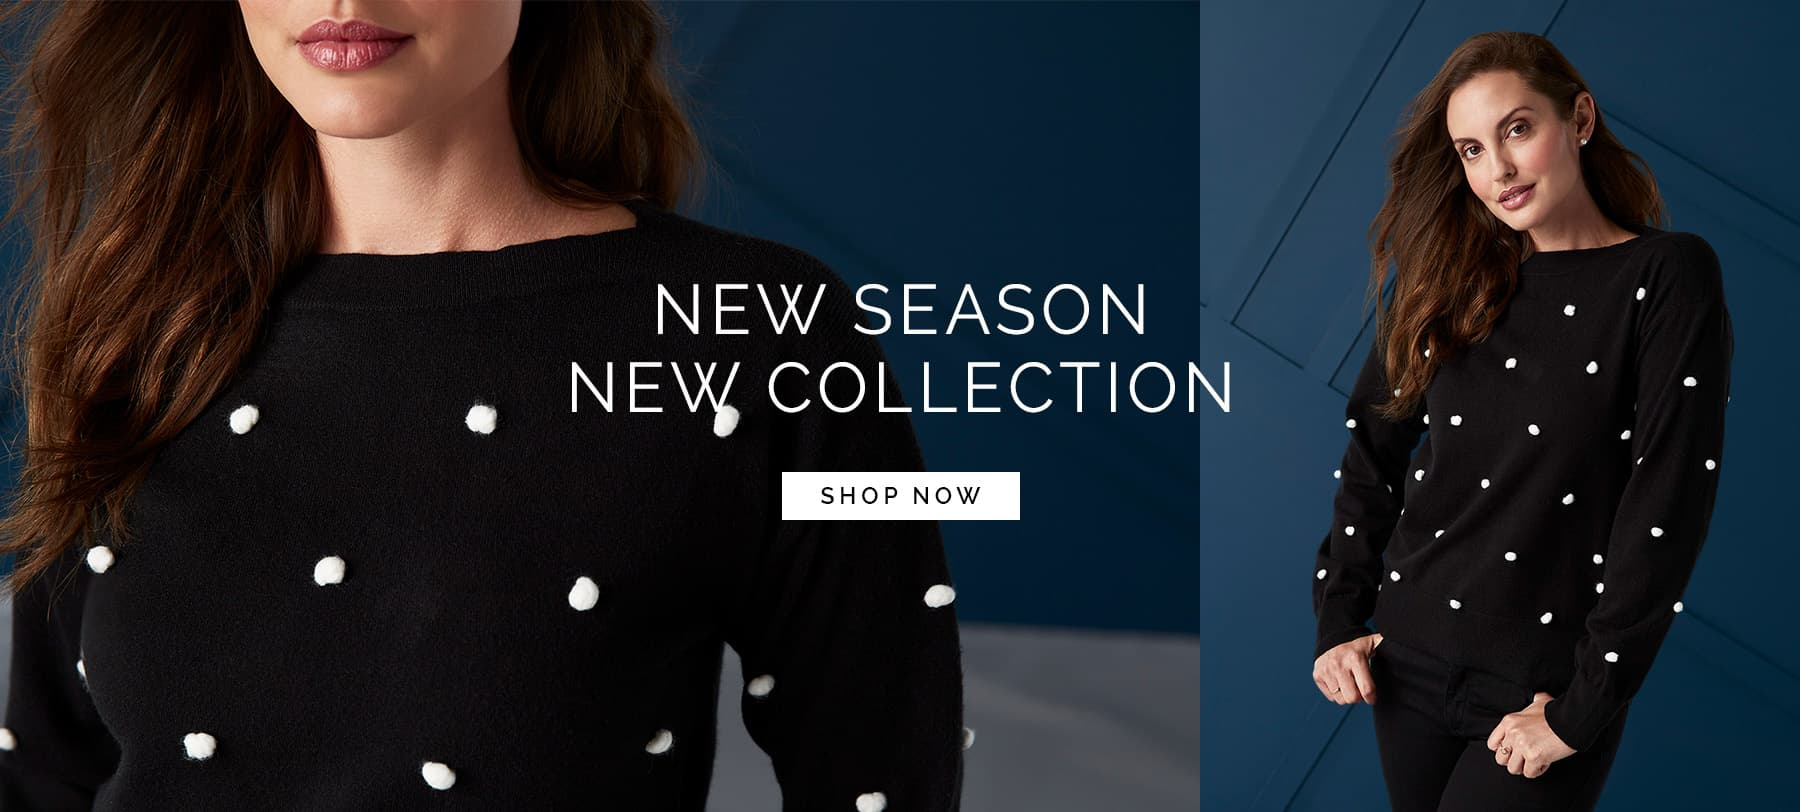 New Season New Collection - Shop Now